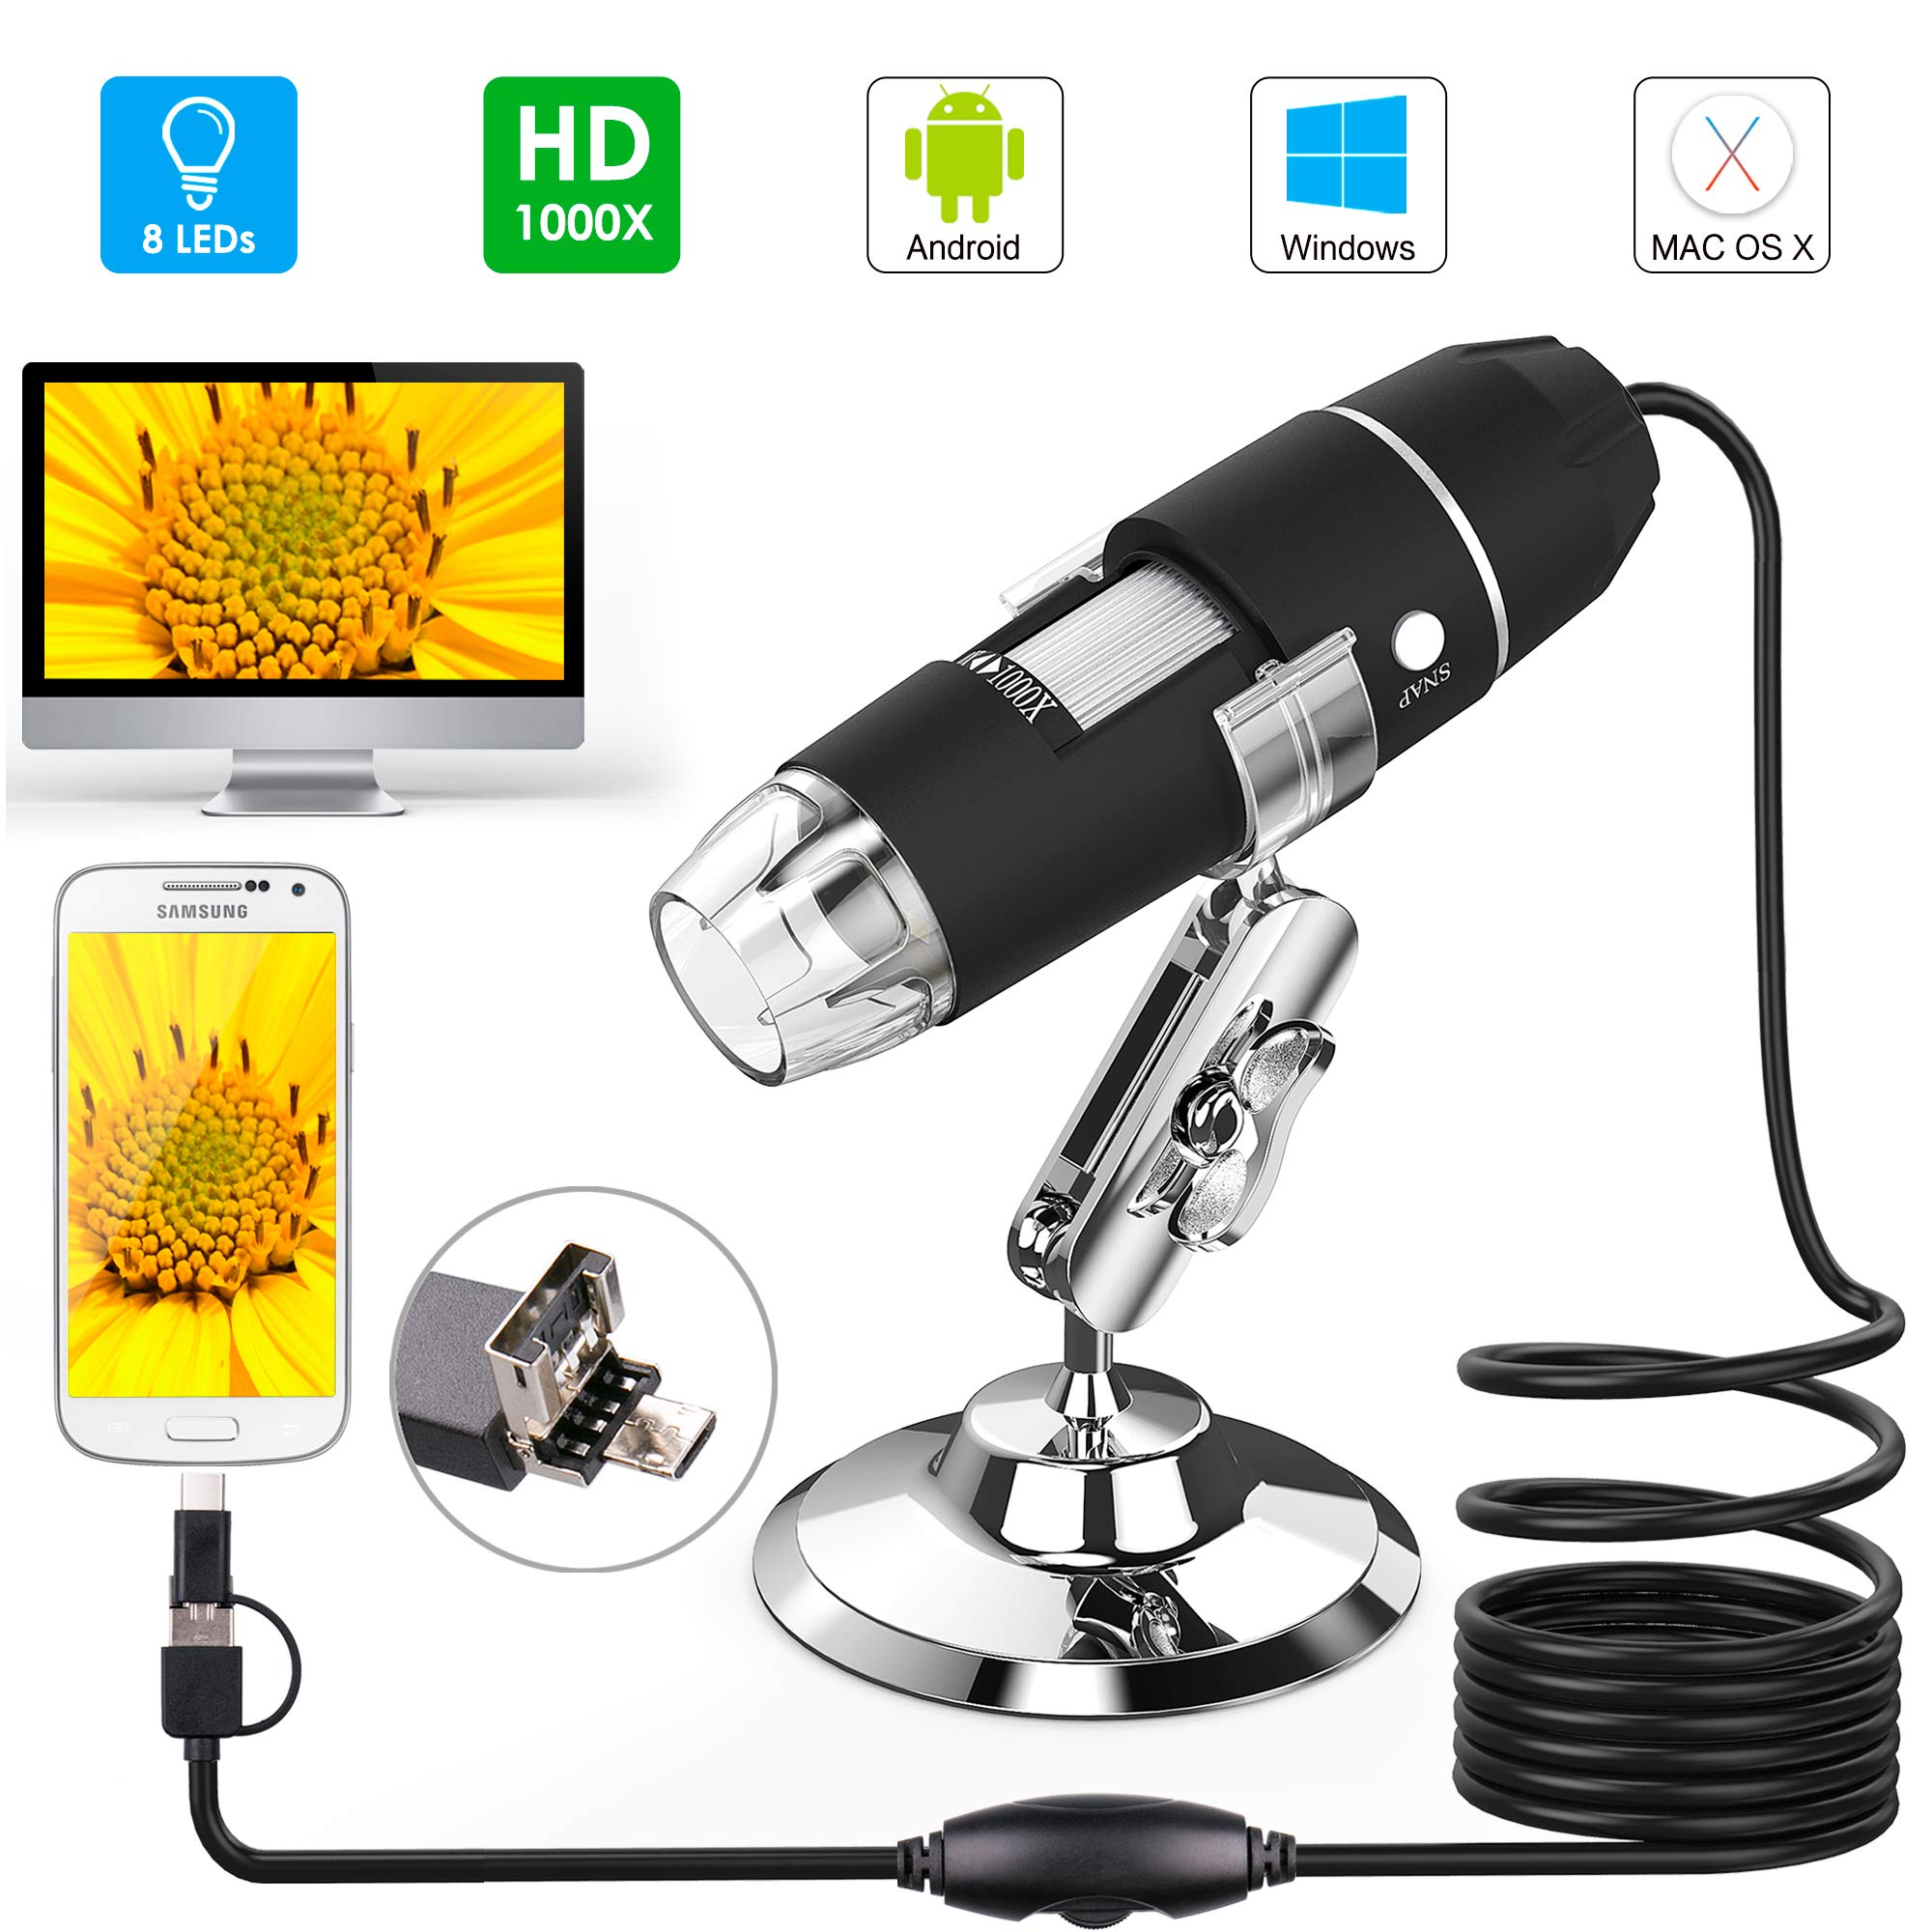 USB Microscope, Splaks 1000x High Power USB Digital Microscope 3 in 1 PCB Microscope Camera with 8 Led Lights and Microscope Stand for Kids Compatible with Windows, Android and Mac by Splaks